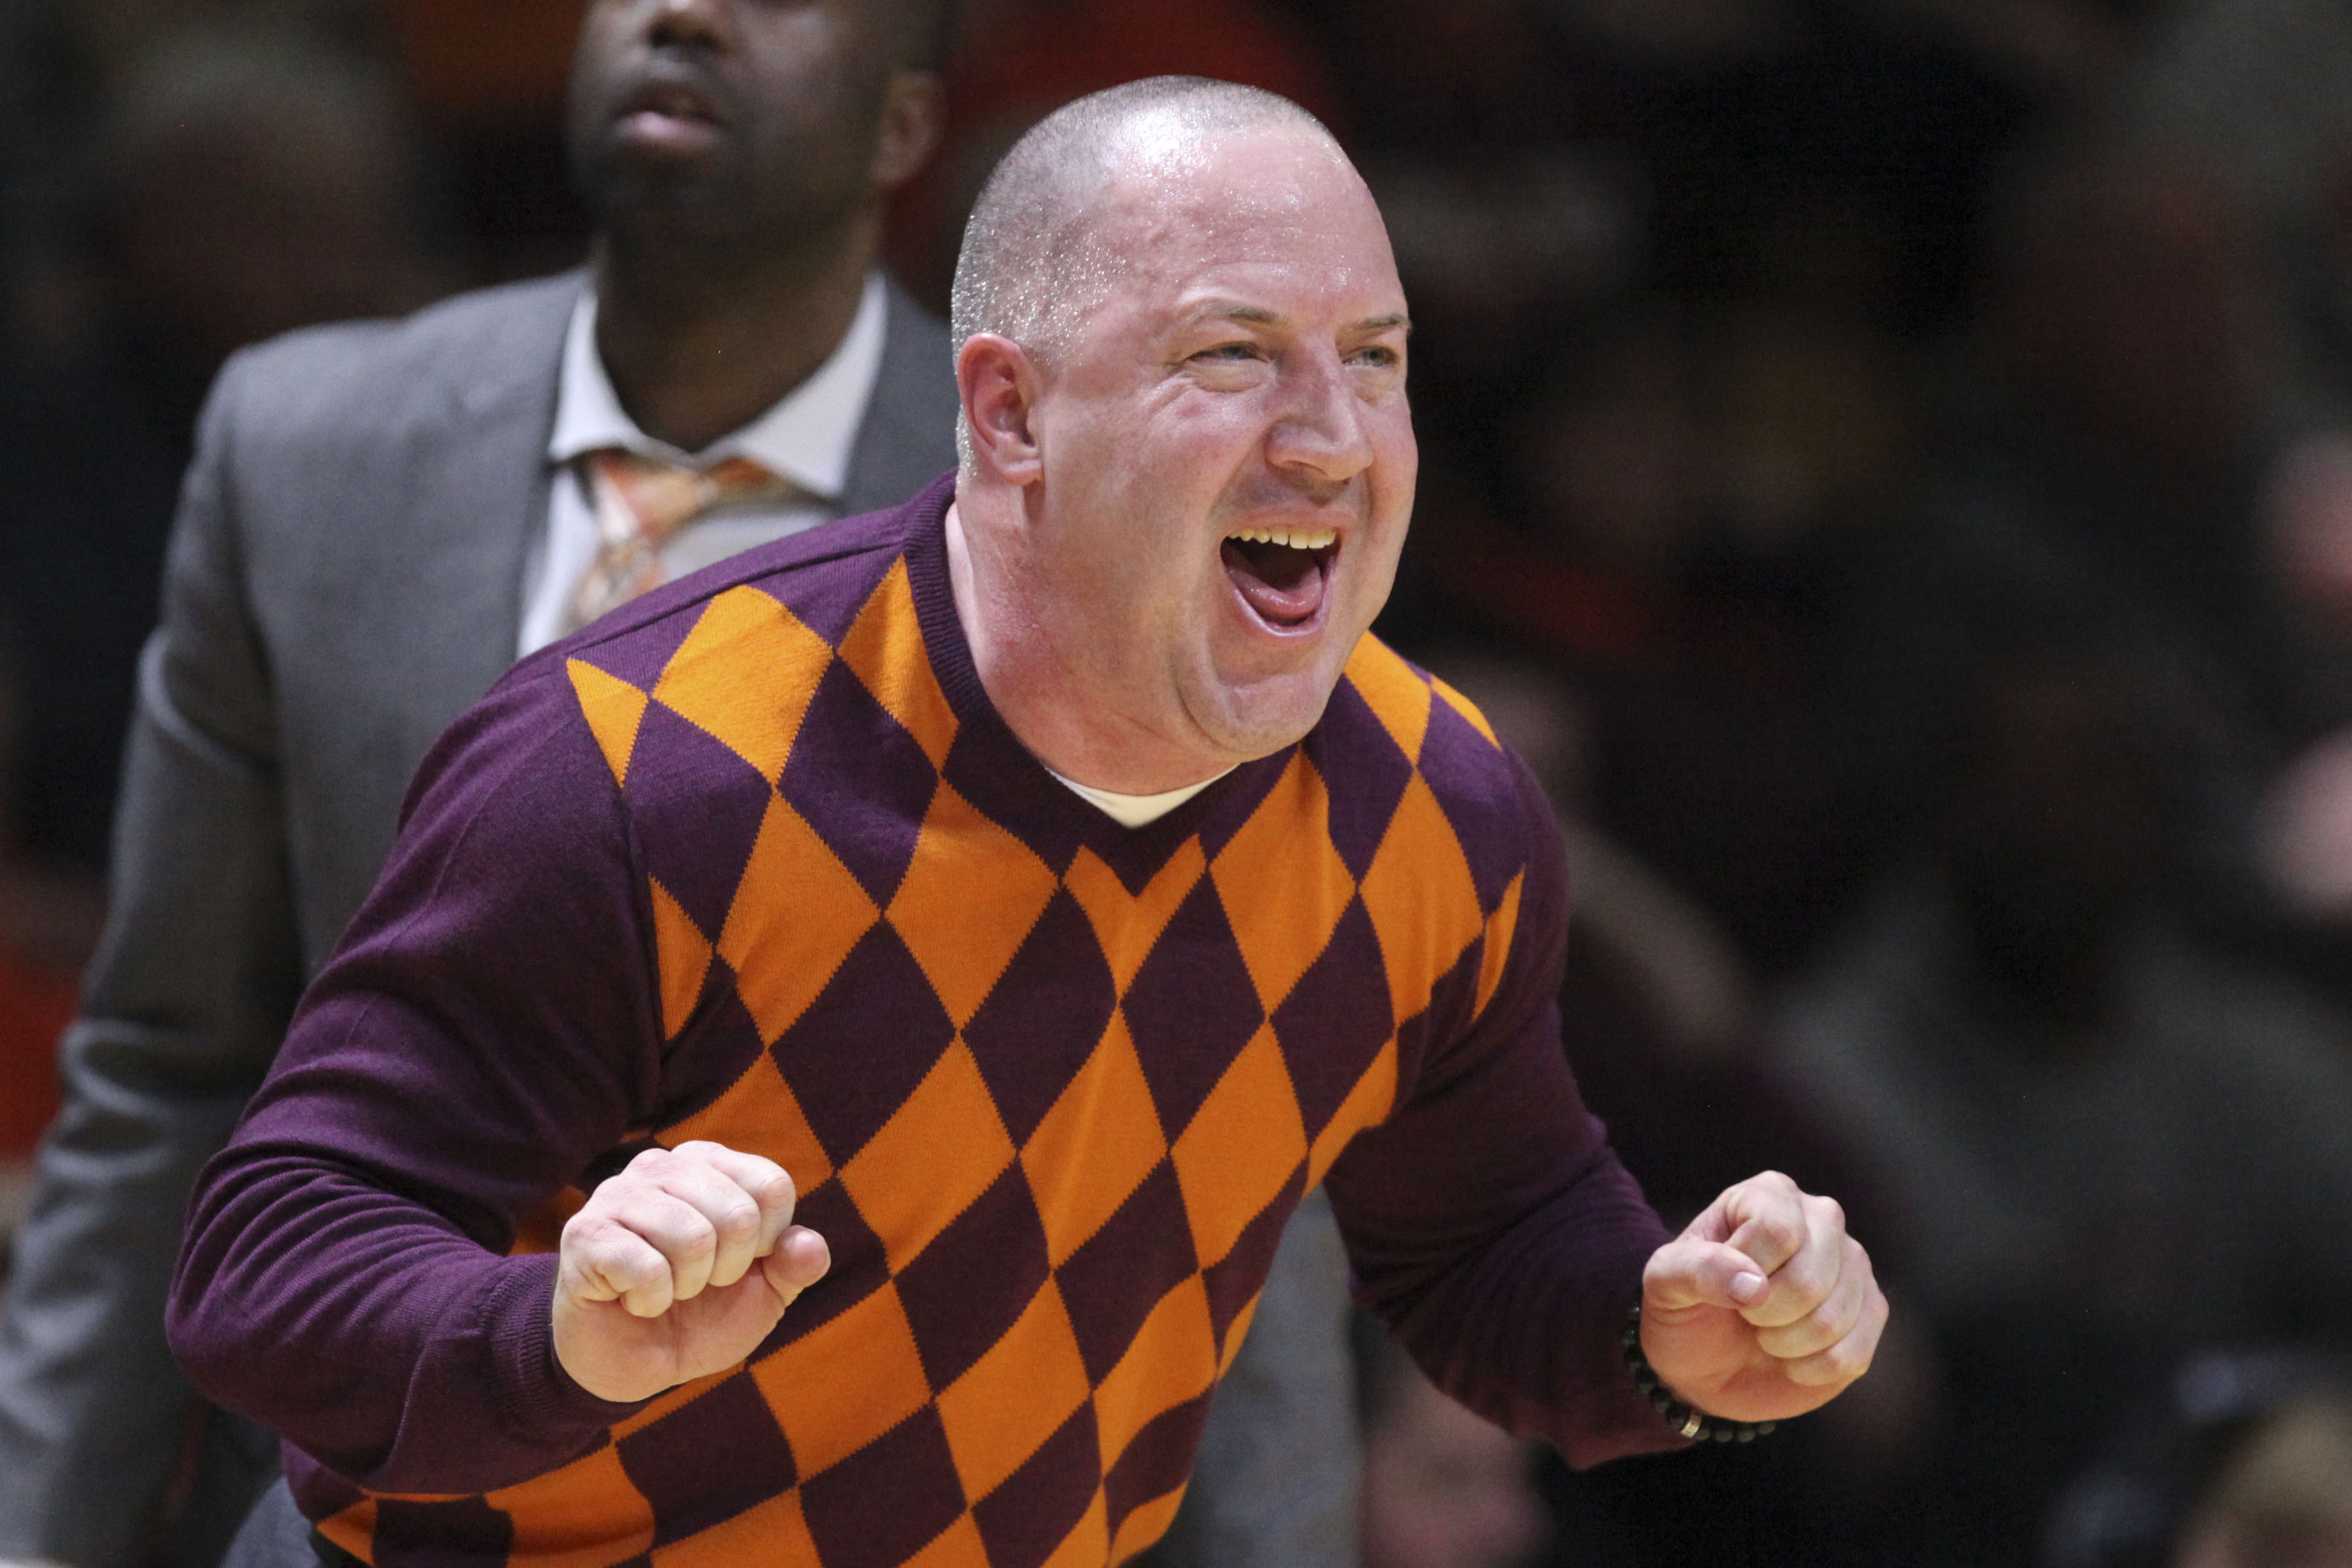 Virginia Tech head coach Buzz Williams celebrates in the final moments of the Virginia Tech, Georgia Tech NCAA basketball game in Blacksburg, Va., Monday, Feb. 9, 2015. Virginia Tech won 65-63.  (AP Photo / The Roanoke Times, Matt Gentry)    LOCAL TELEVISION OUT; SALEM TIMES REGISTER OUT; FINCASTLE HERALD OUT;  CHRISTIANBURG NEWS MESSENGER OUT; RADFORD NEWS JOURNAL OUT; ROANOKE STAR SENTINEL OUT